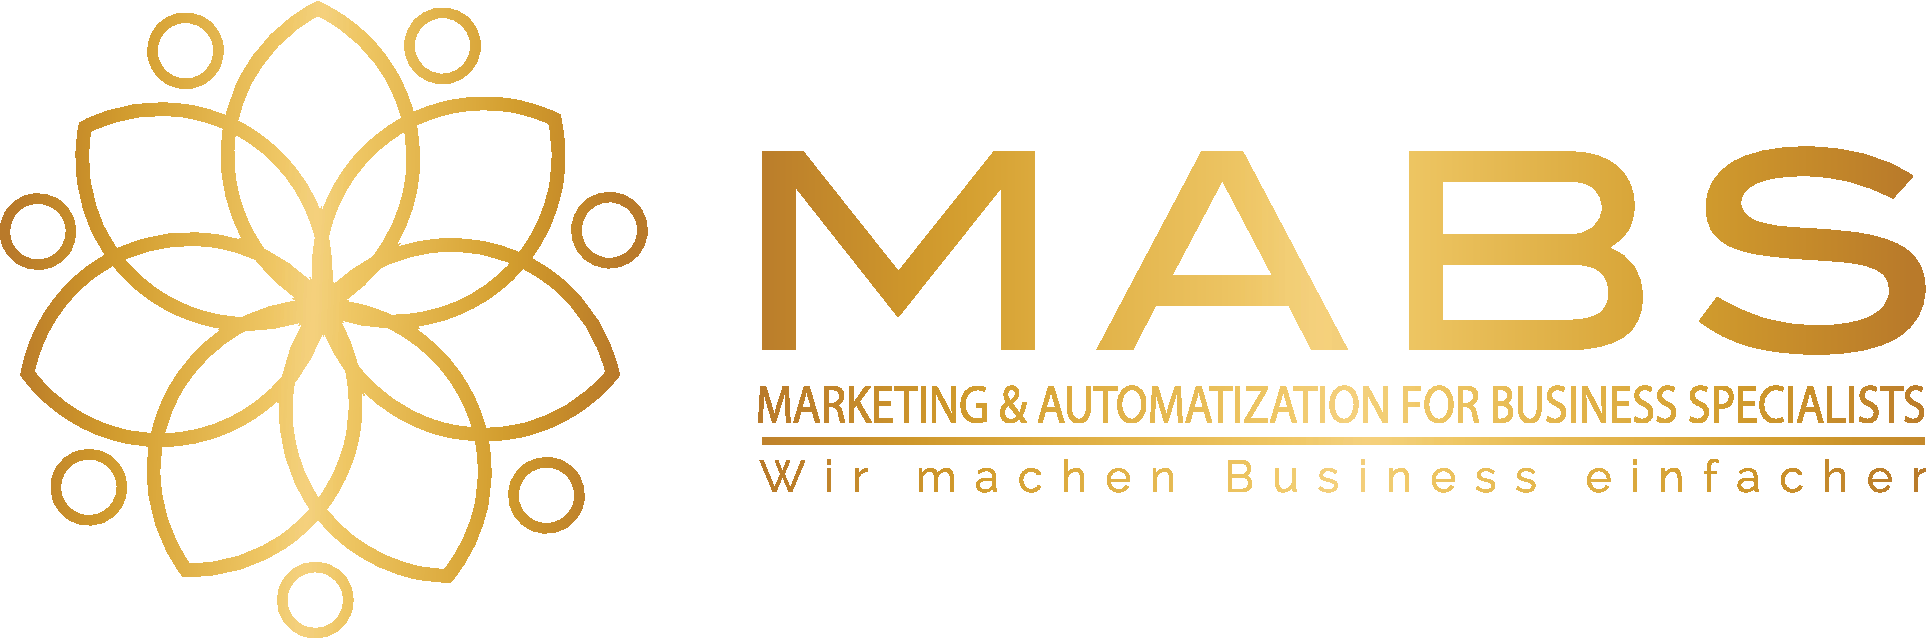 MABS Consulting | Marketing & Automatization for Business Specialists